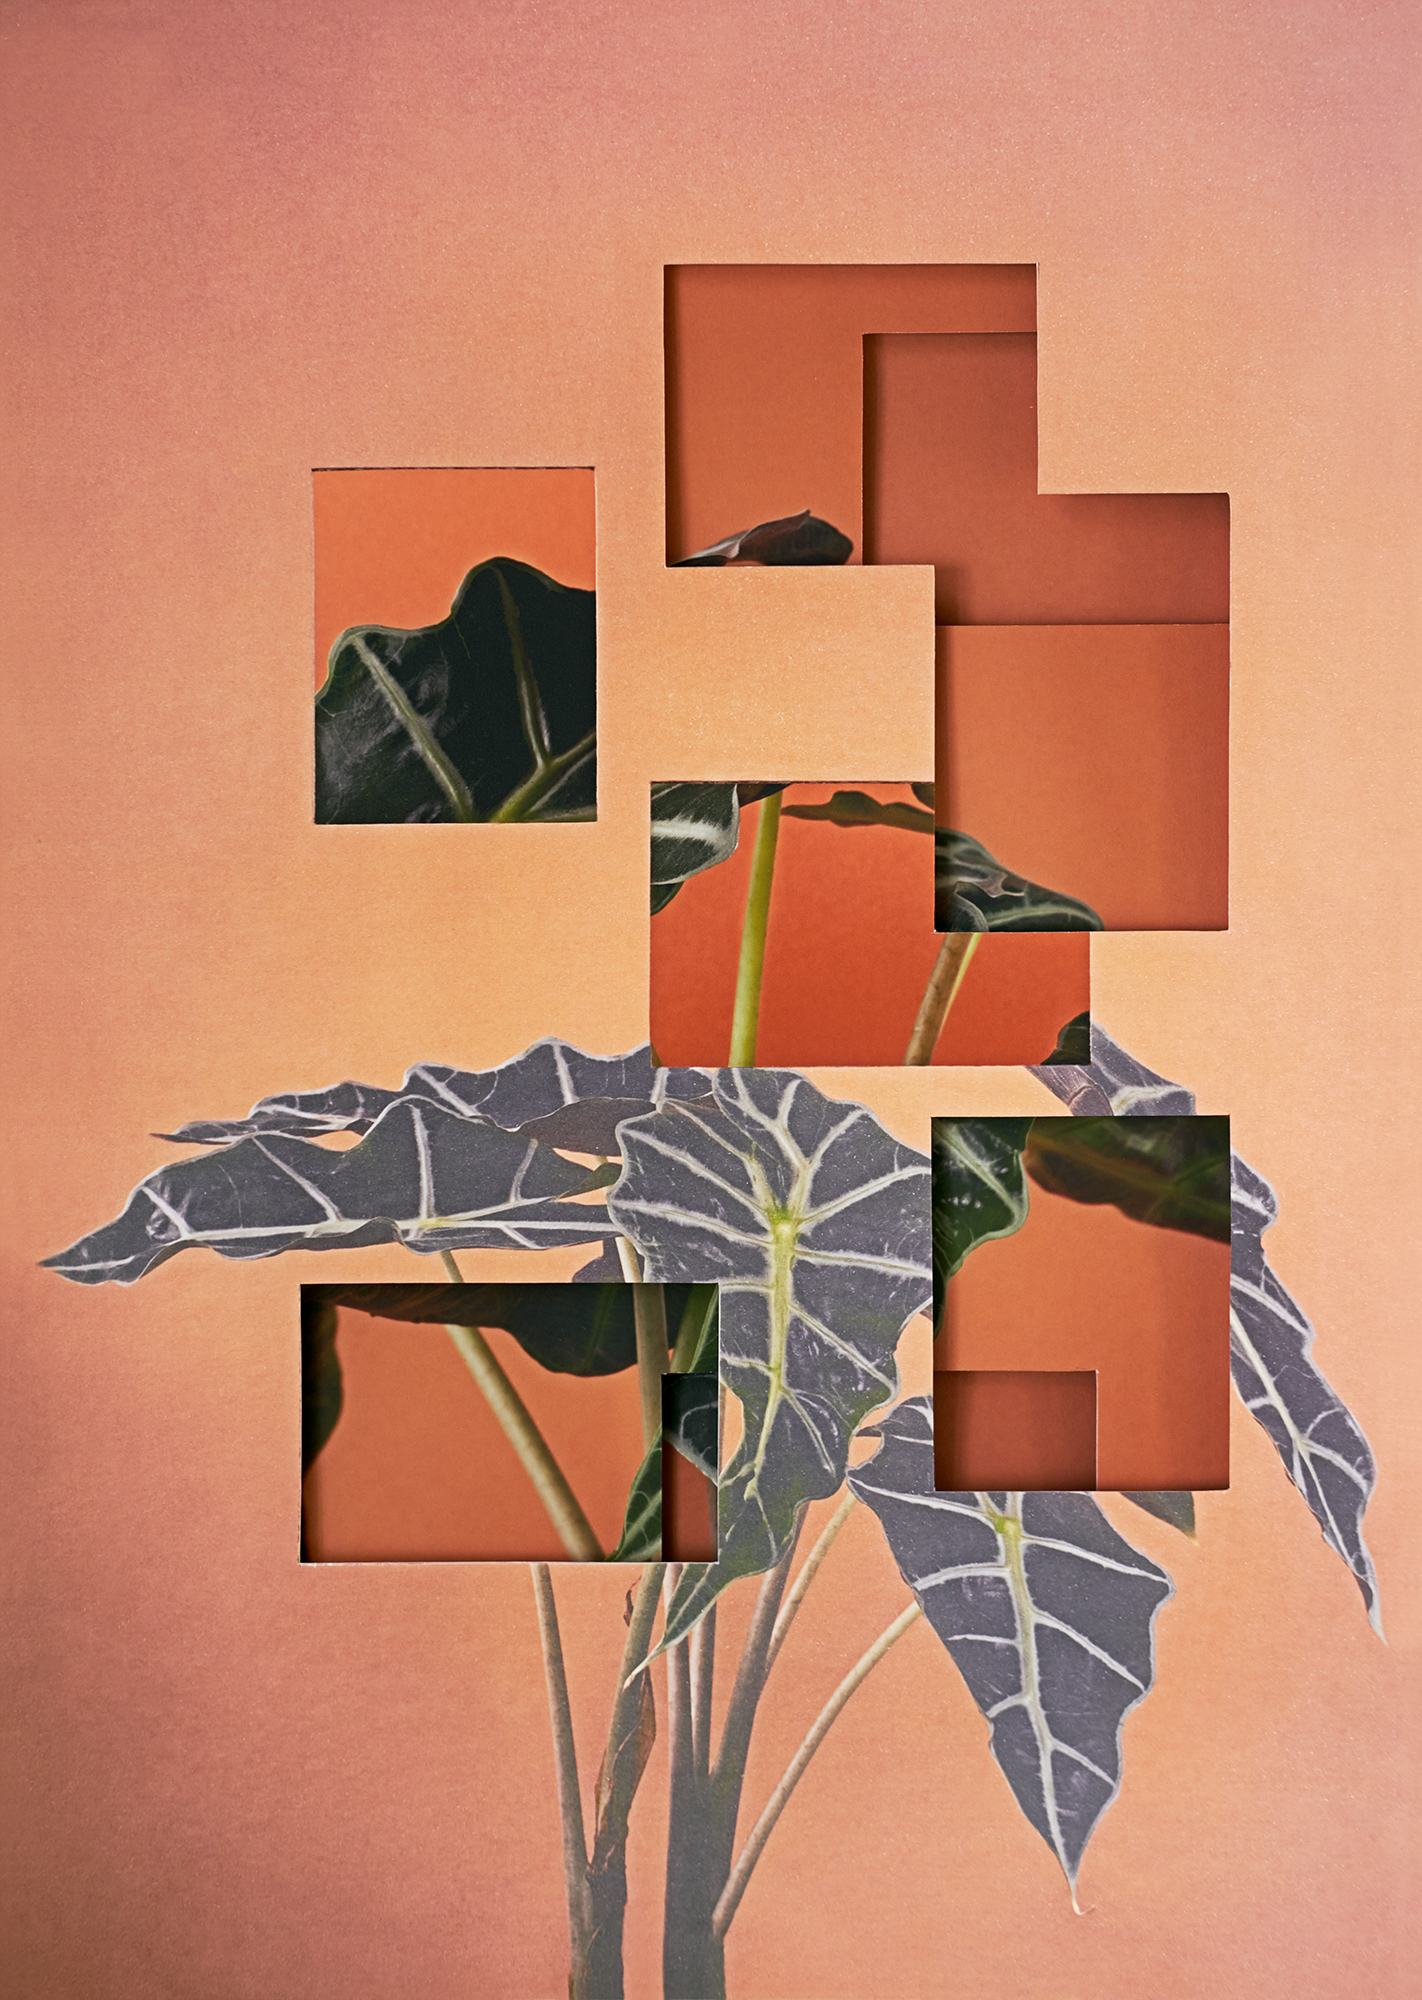 Alma Haser,  Alocasia , 2018  Layered and cut digital pigment prints (3 layers), 47 x 35 cm total (approx. 18.5 x 13.75 in), edition of 7   Inquire